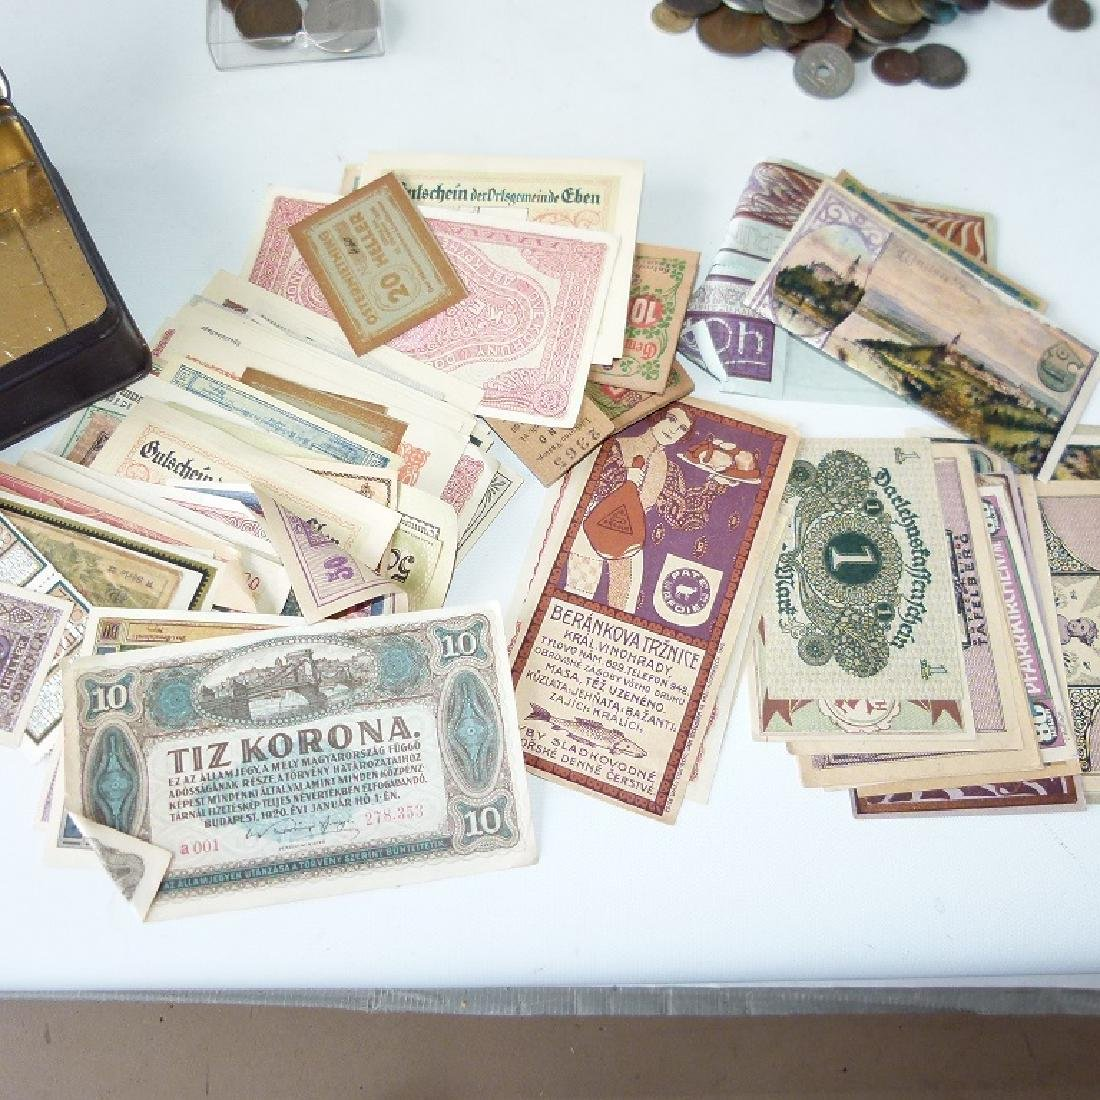 LOT ASSORTED US & FOREIGN CURRENCY, 19/20TH C.